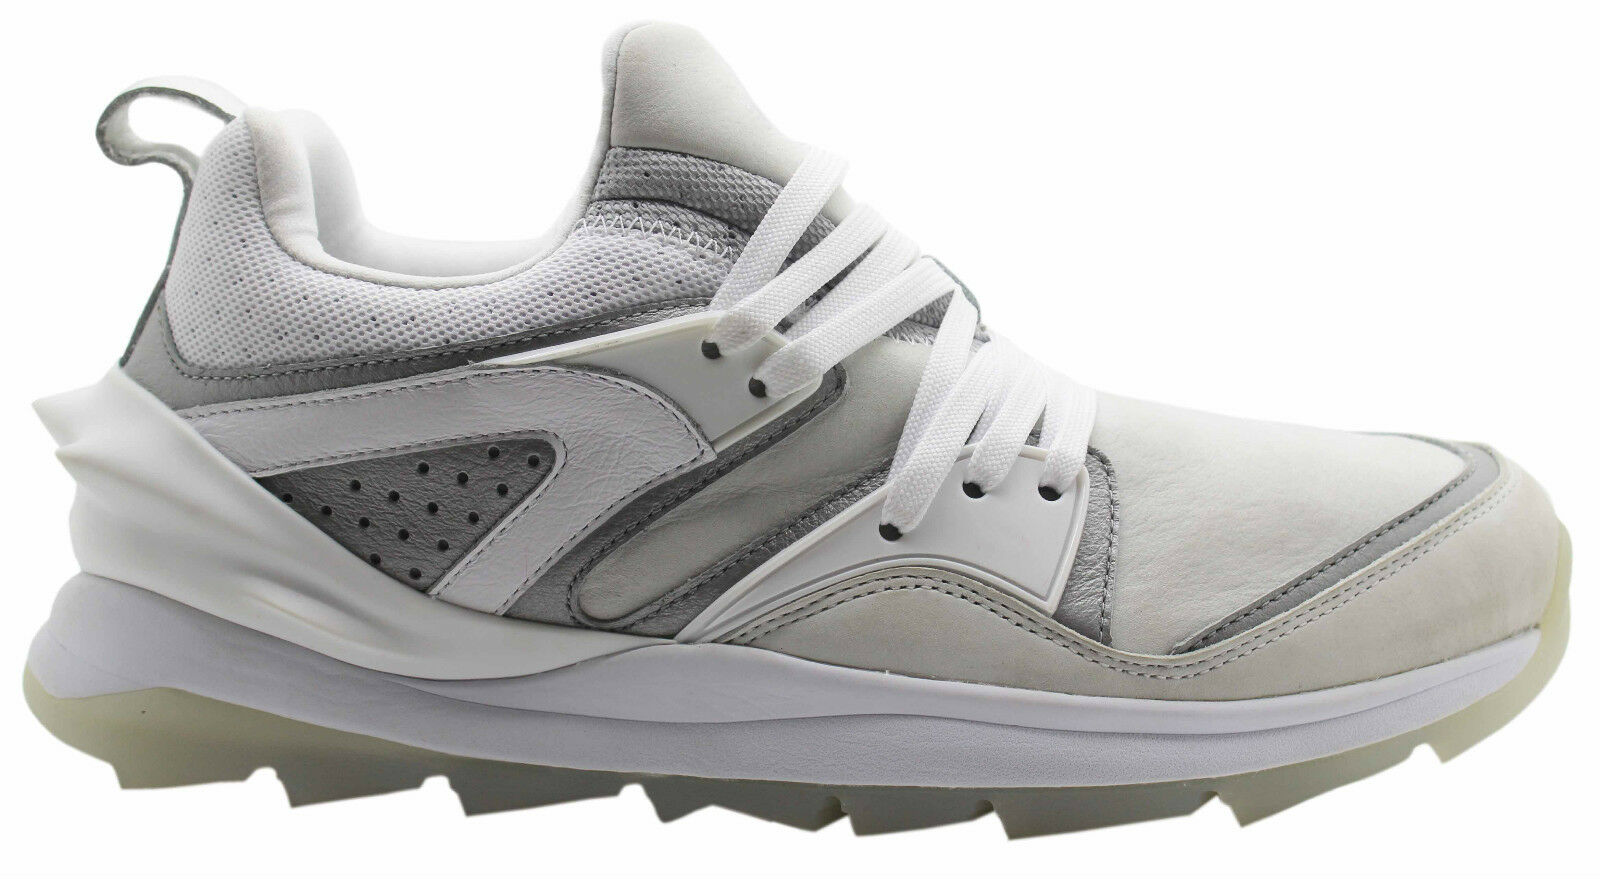 Puma Blaze Swift Tech Mens Trainers White Leather Lace Up 357824 02 D39 The most popular shoes for men and women